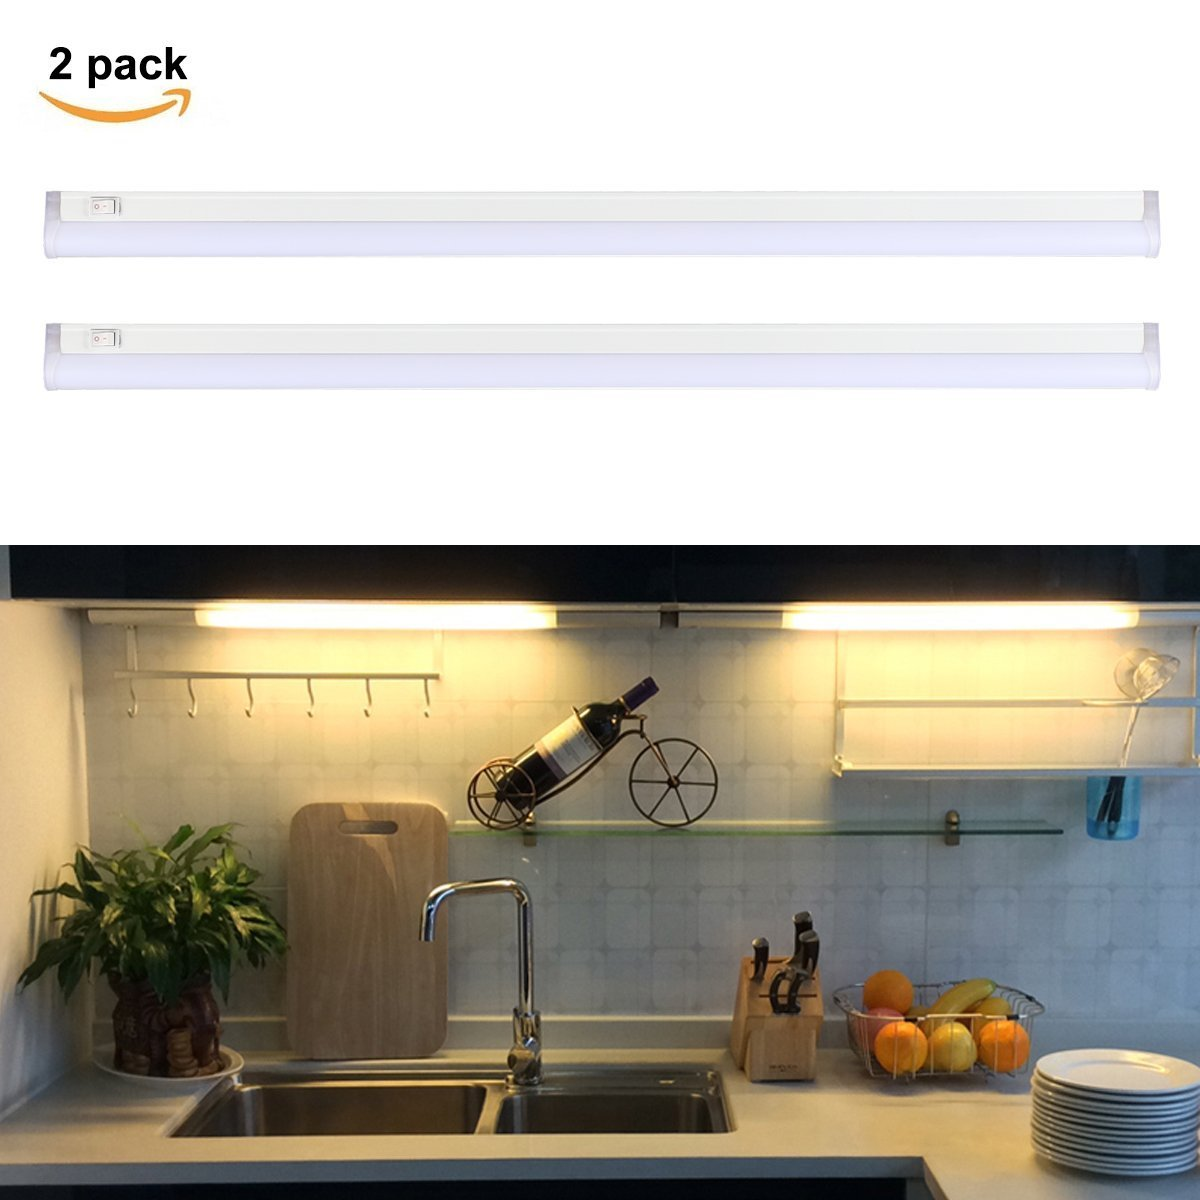 S G Led Under Cabinet Light Bar T5 Integrated Single Fixture Linkable Ultra Slim 17 8 Inches 3000k 1040 Lm Great For Kitchen Counter Lighting